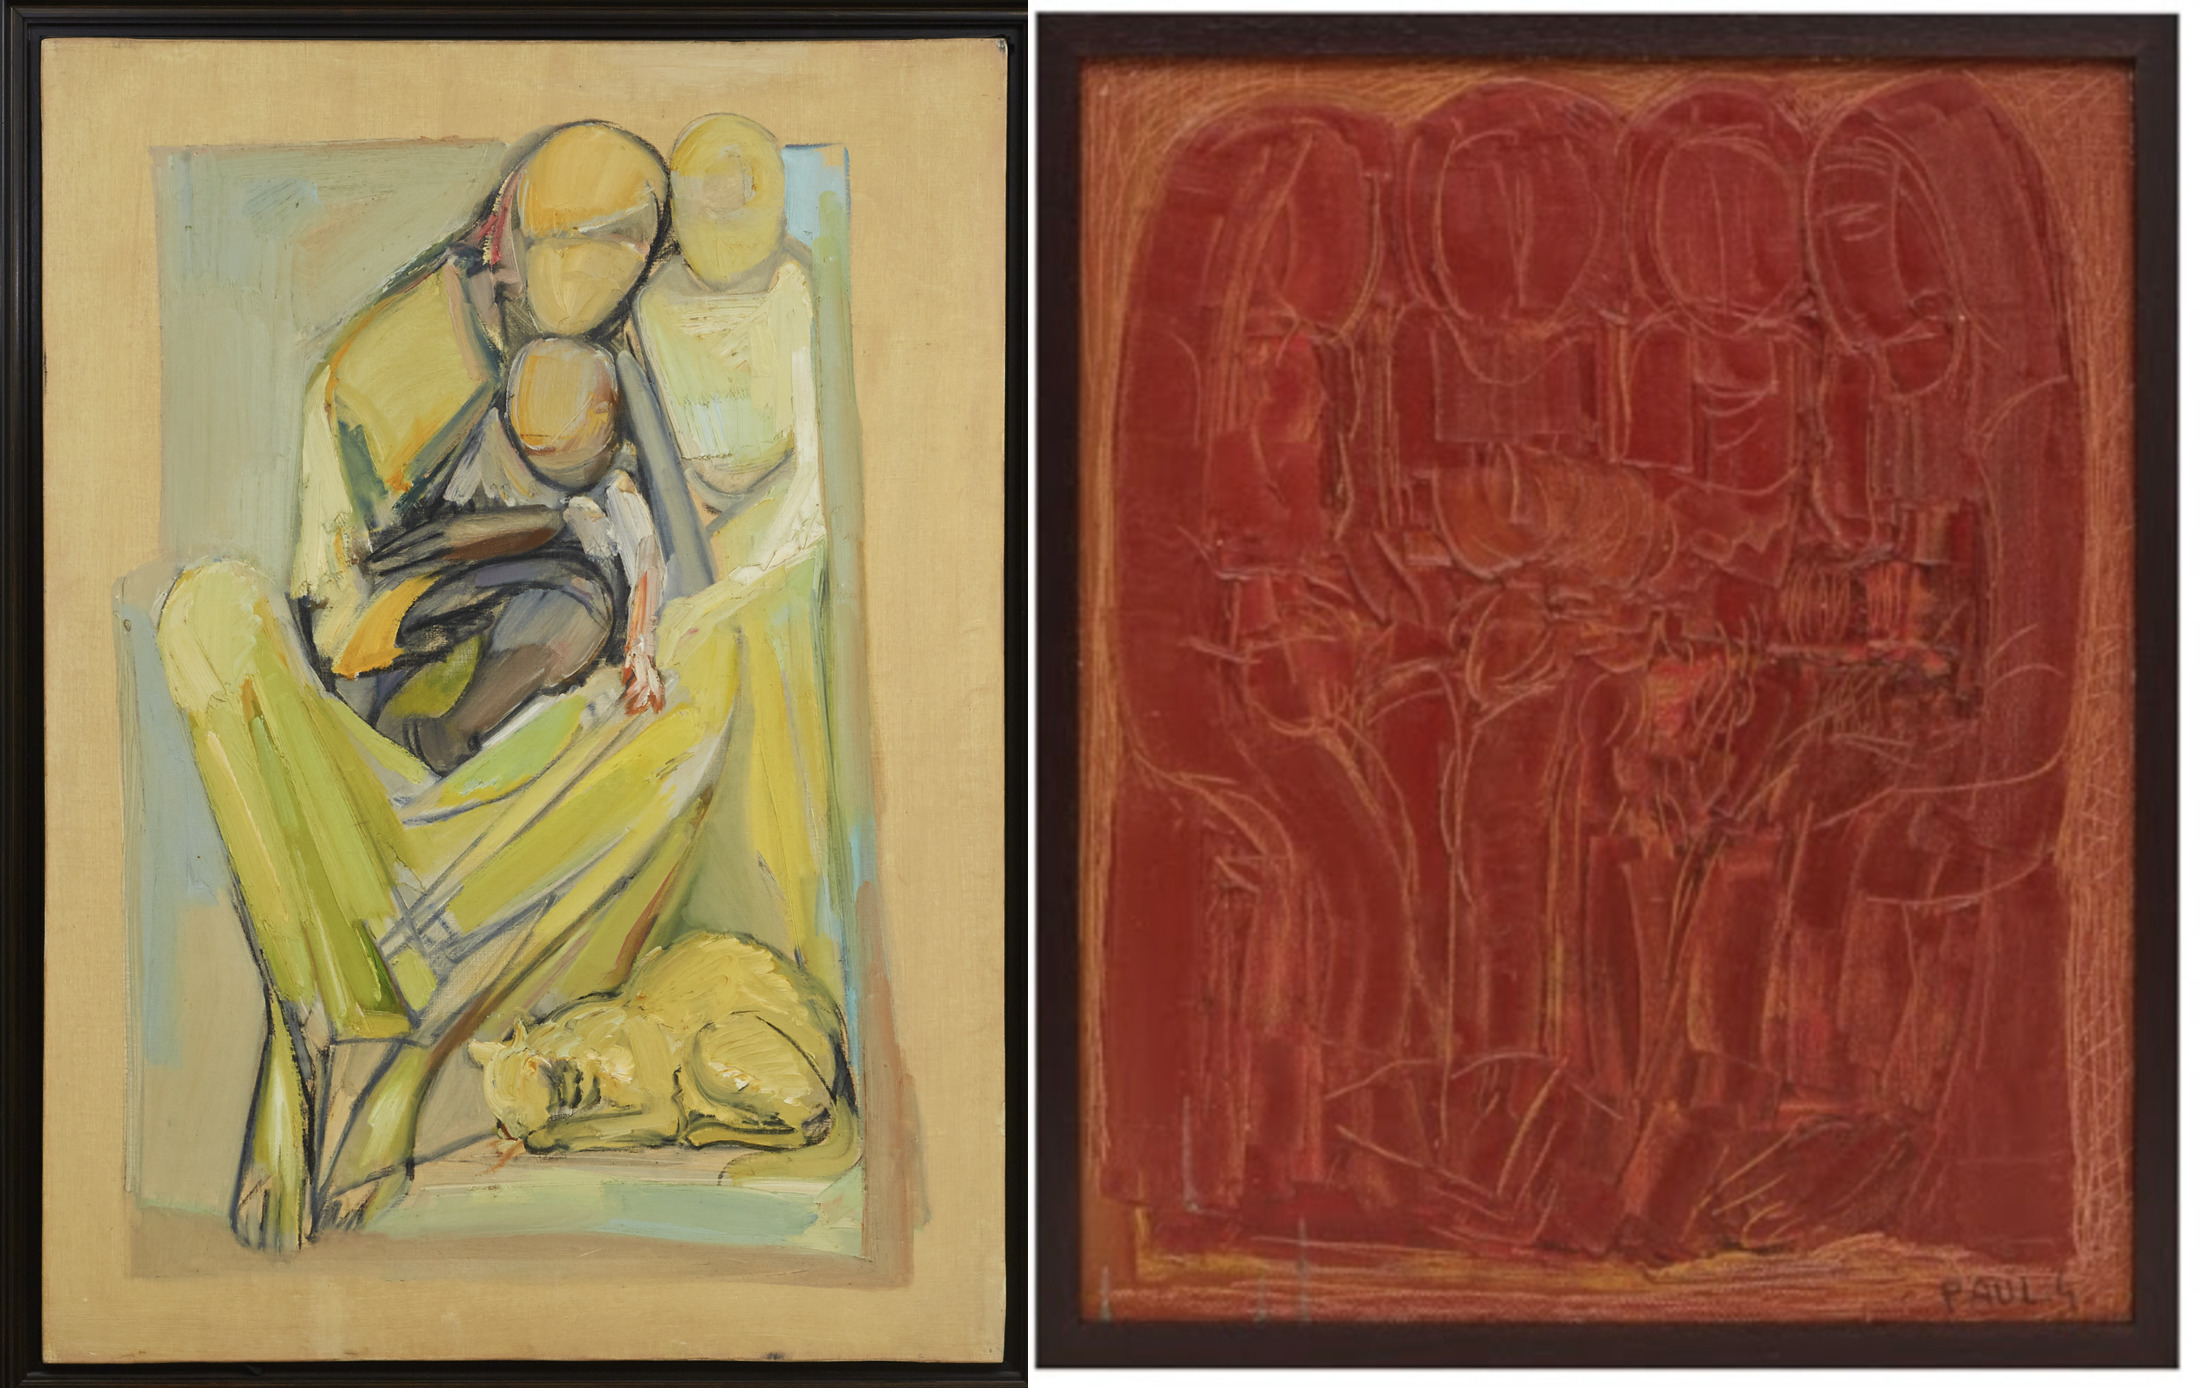 (L)L'Enfant (1978) by Paul Guiragossian from the collection of Dr. Anwar Gargash. (R) Group with Flowers (1963) from the Barjeel Art Foundation collection. Both images courtesy of Barjeel Art Foundation